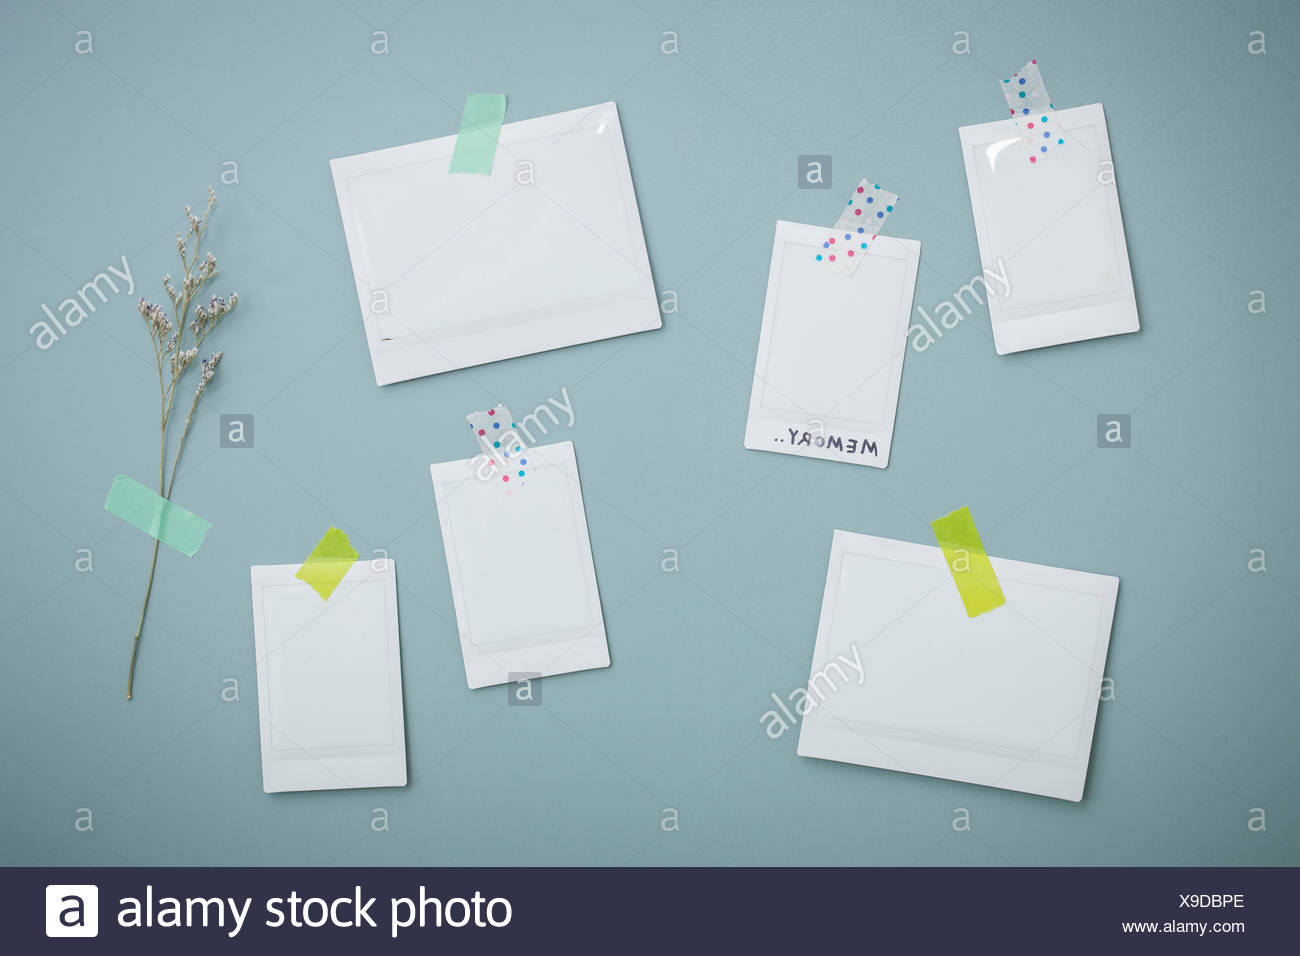 Copy spaces of memos attached on the wall - Stock Image